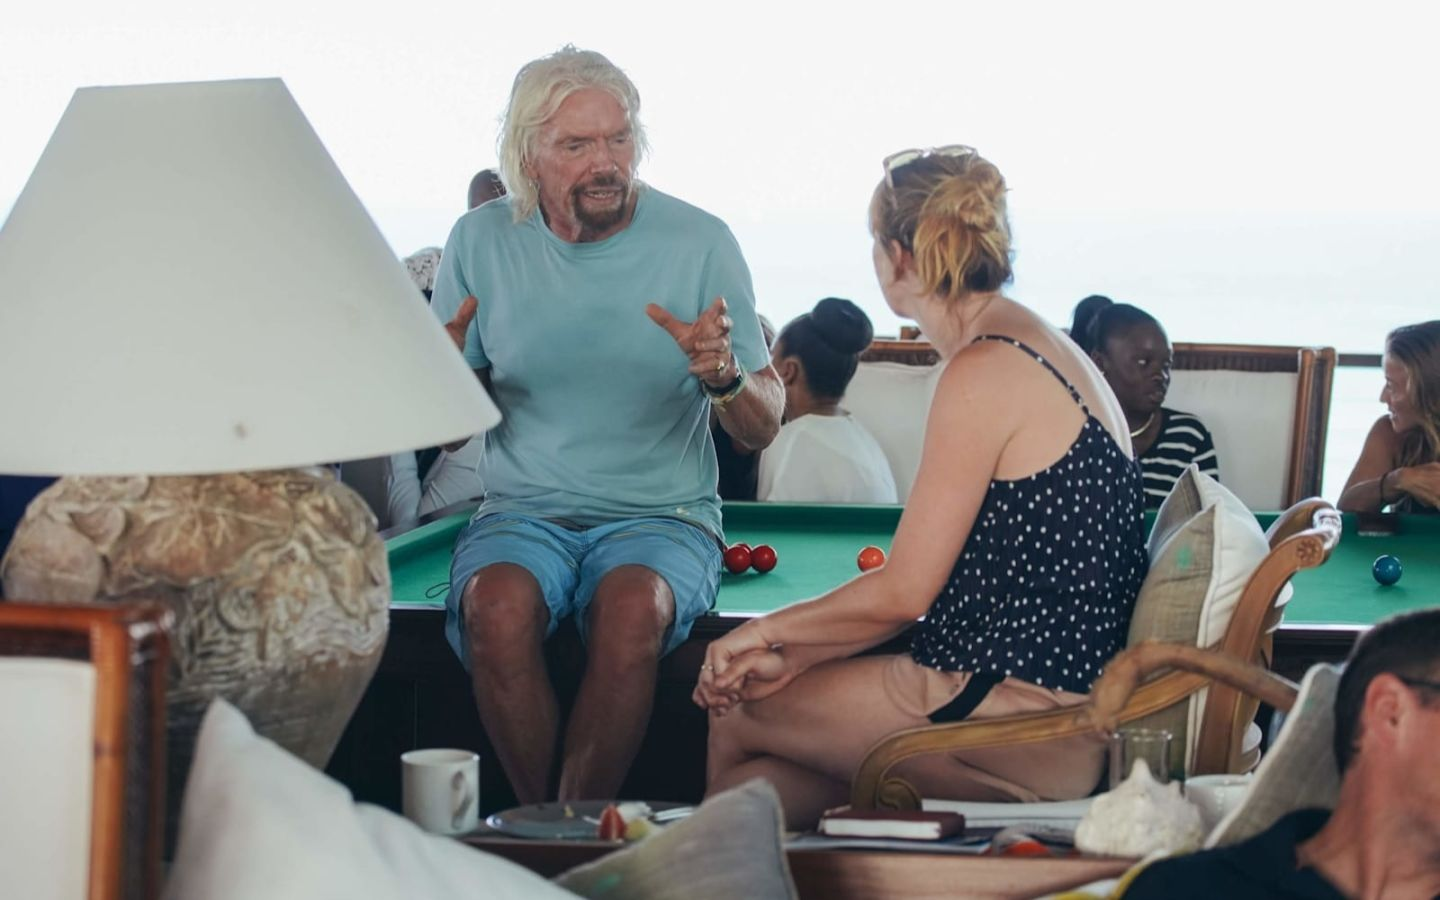 Richard Branson sitting on the edge of a pool table talking to a woman seated next to him